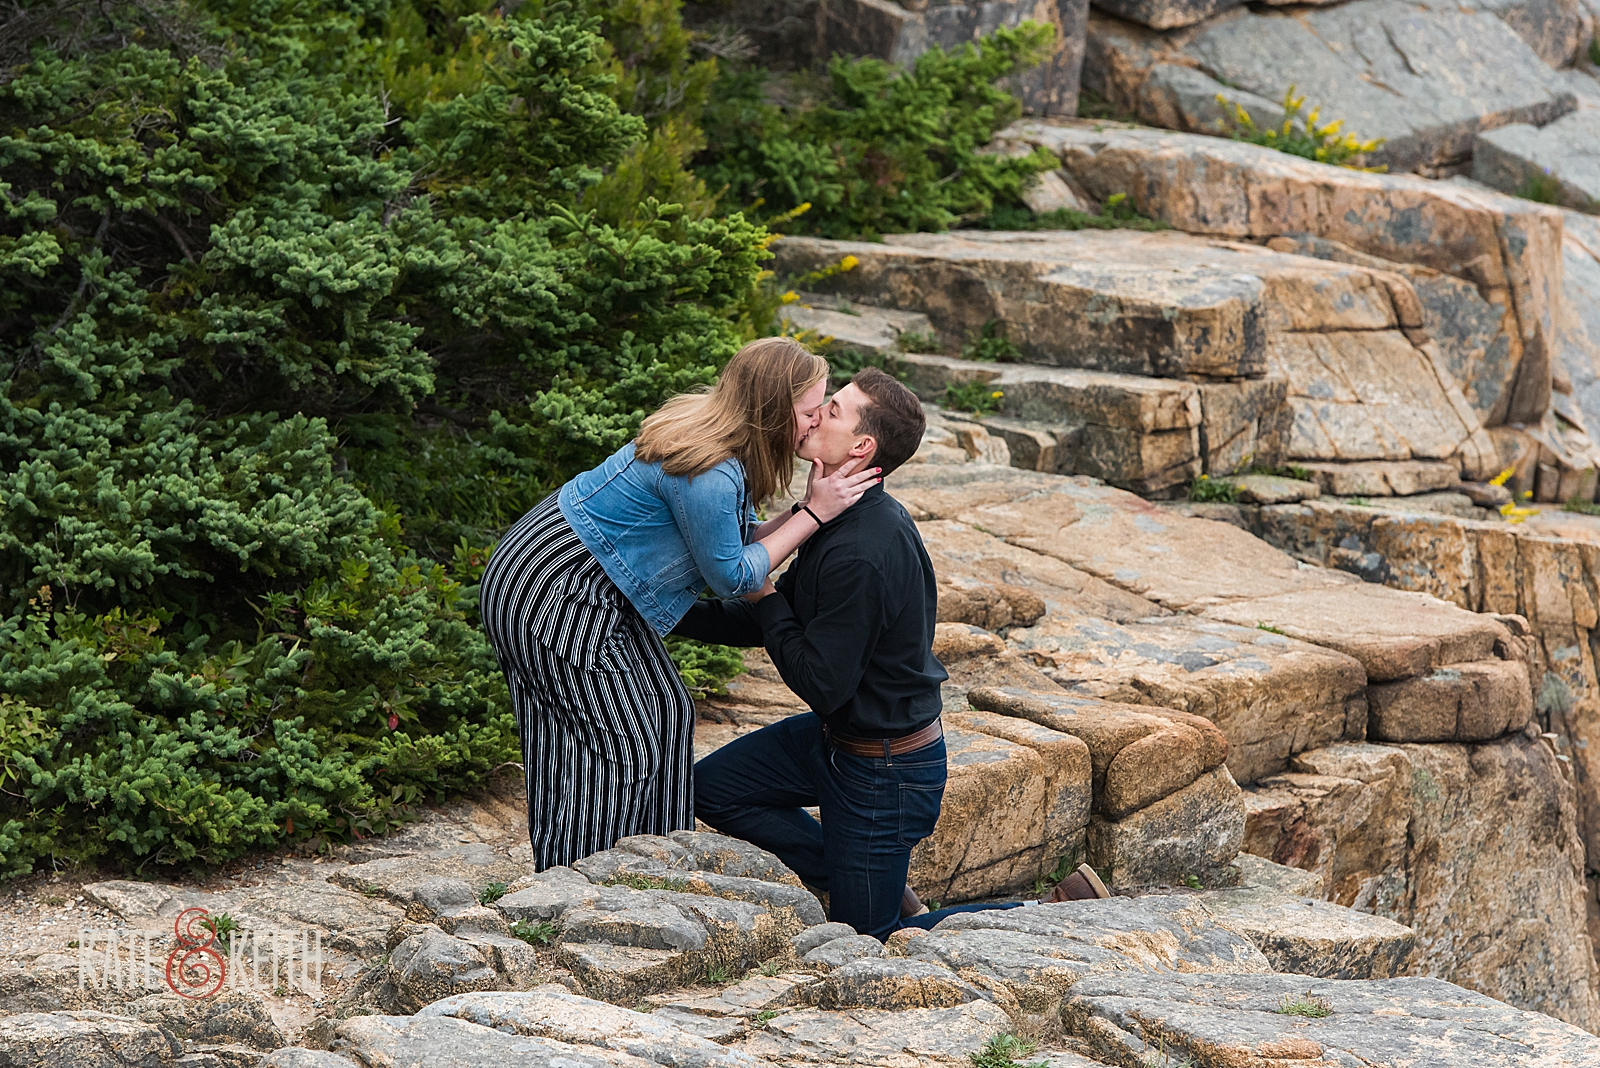 She said yes in Acadia National Park